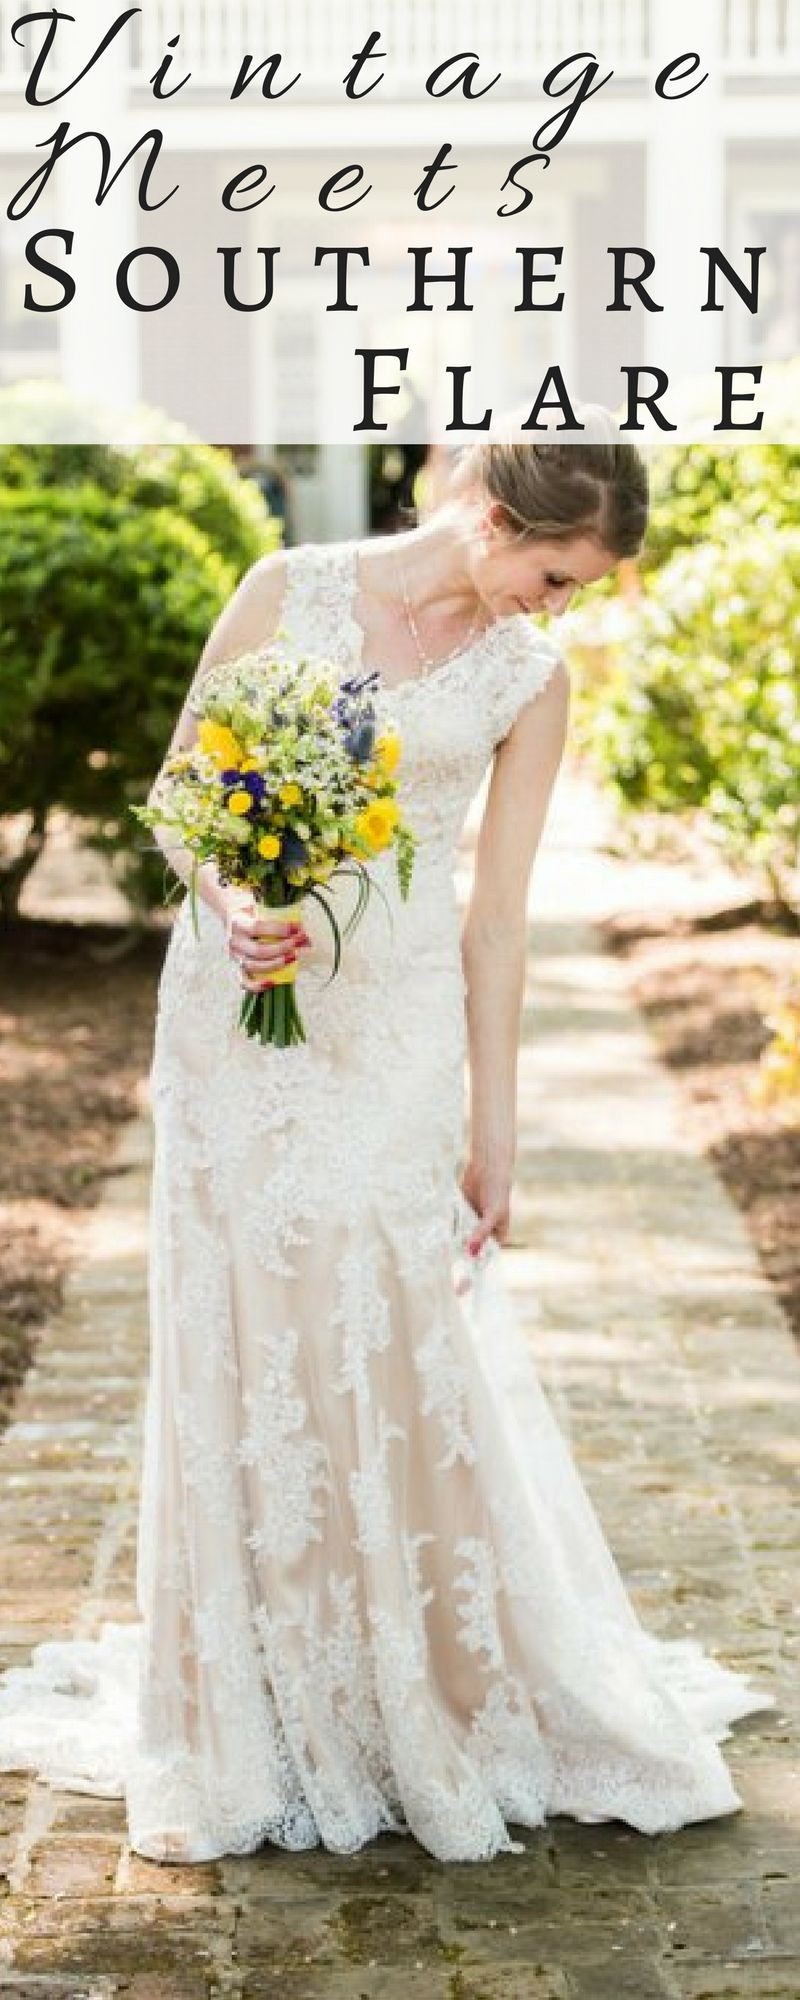 Vintage Meets Southern Flare | Southern, Wedding and Nontraditional ...